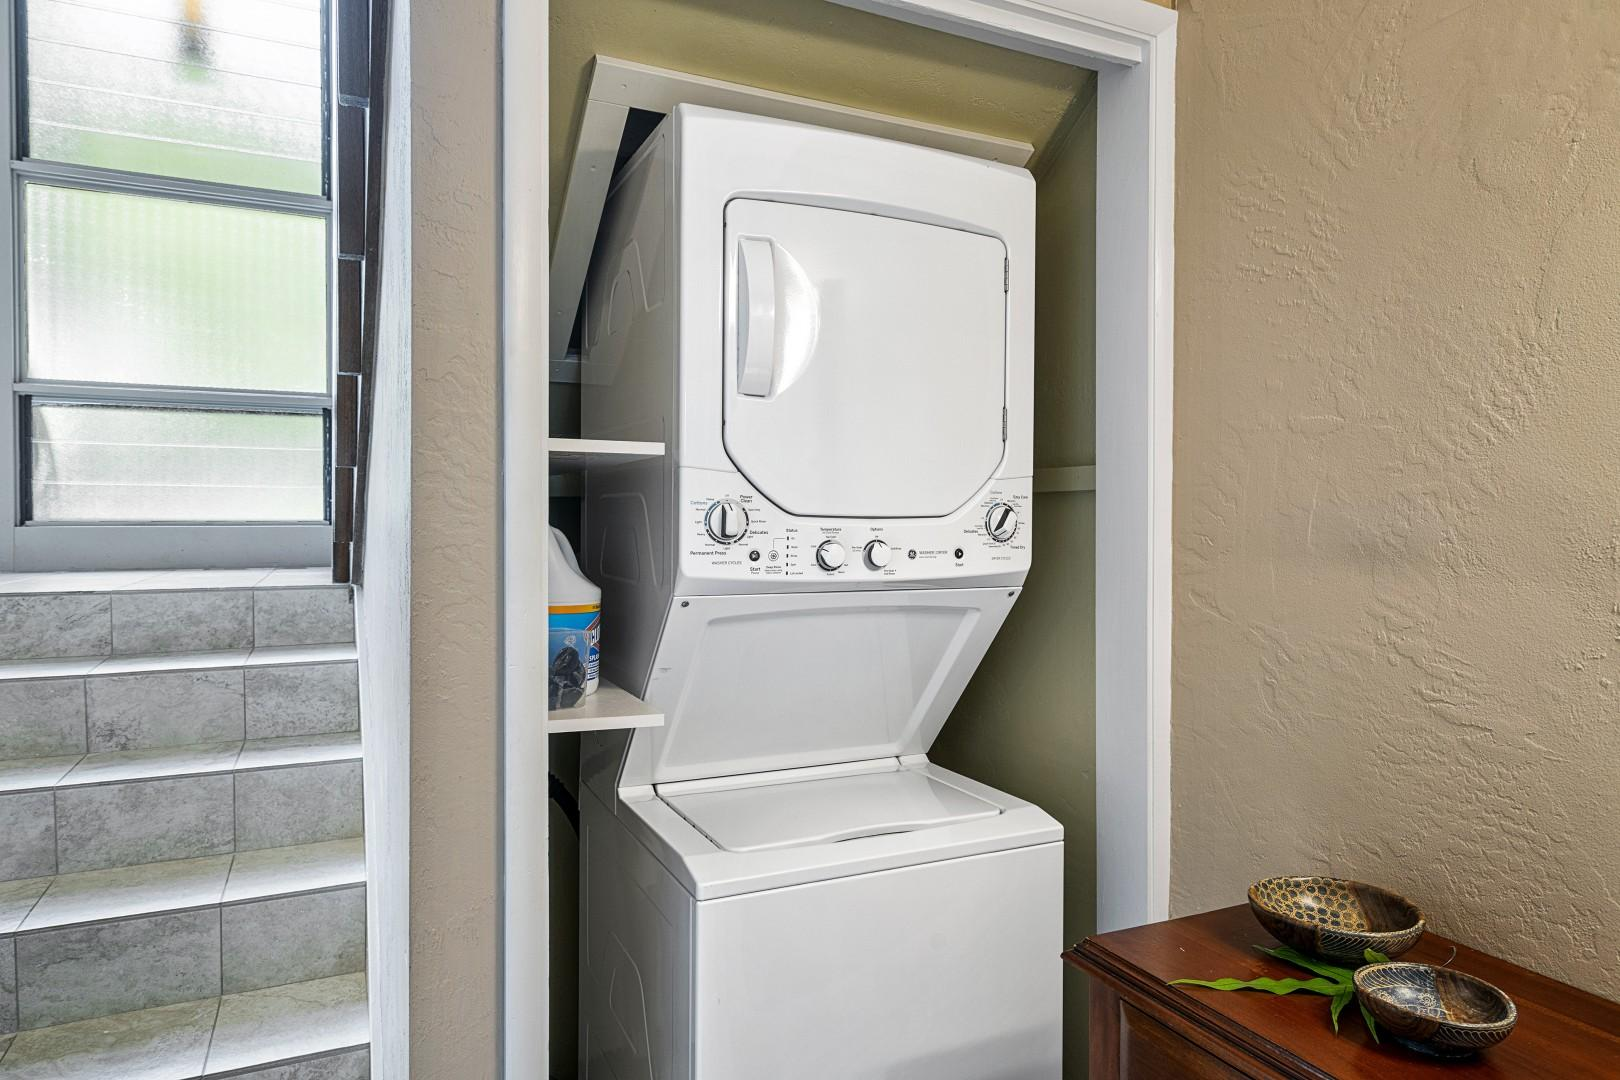 Full sized Washer / Dryer in the unit!